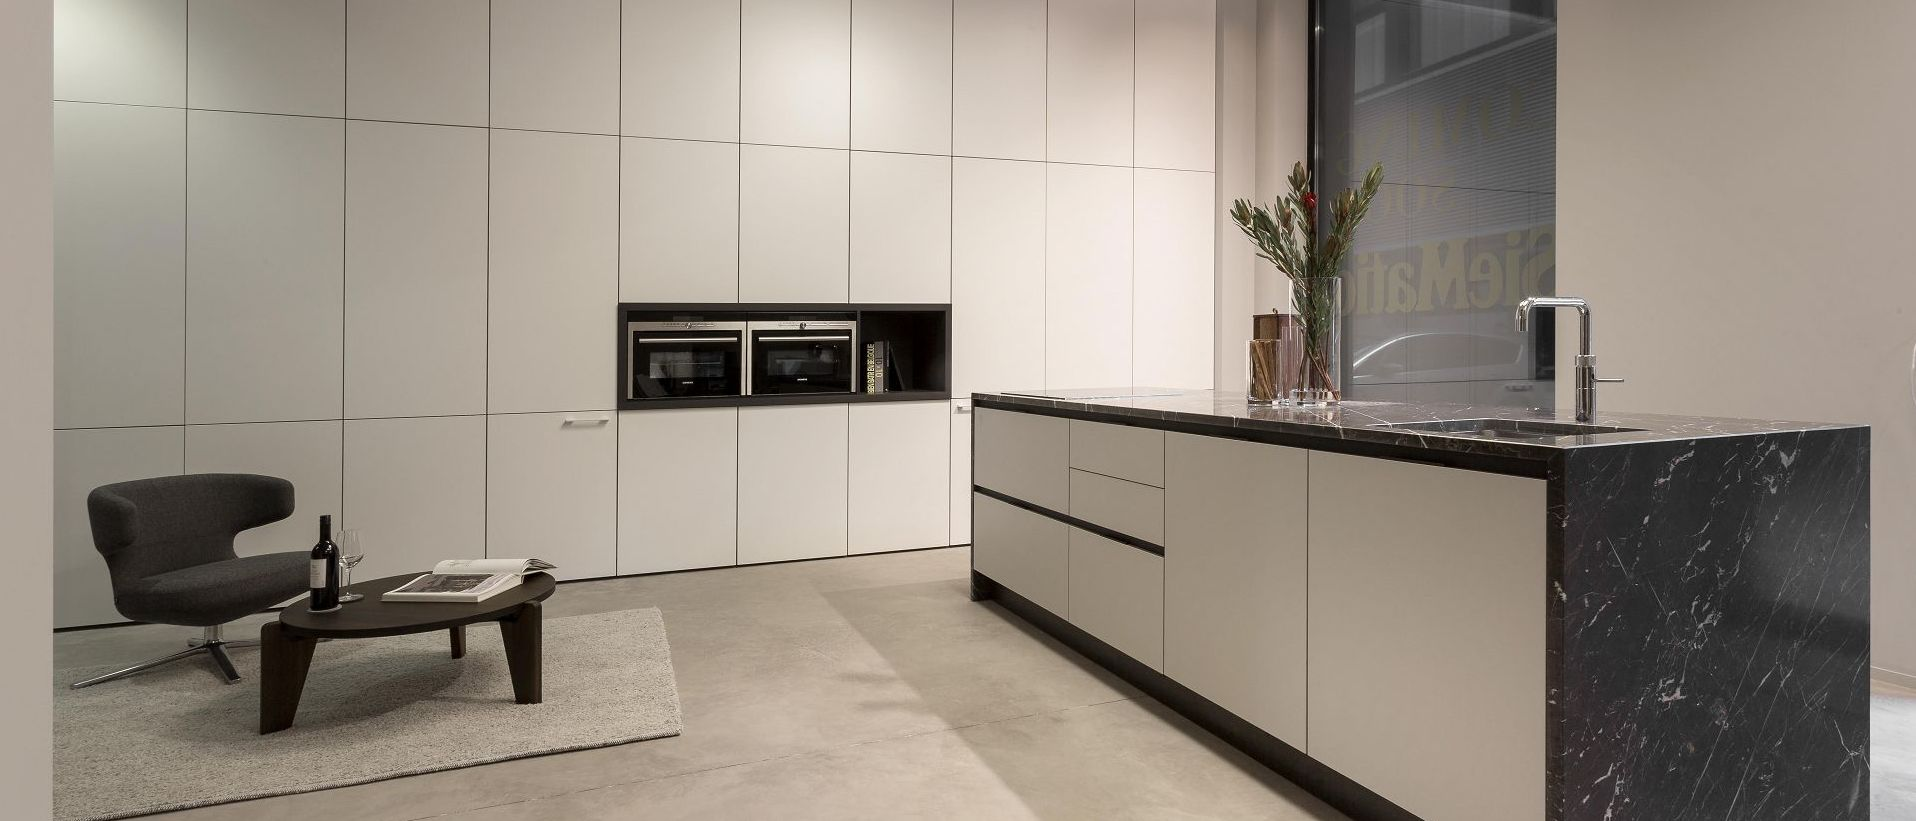 SieMatic kitchen showrooms: Visit a SieMatic partner near you